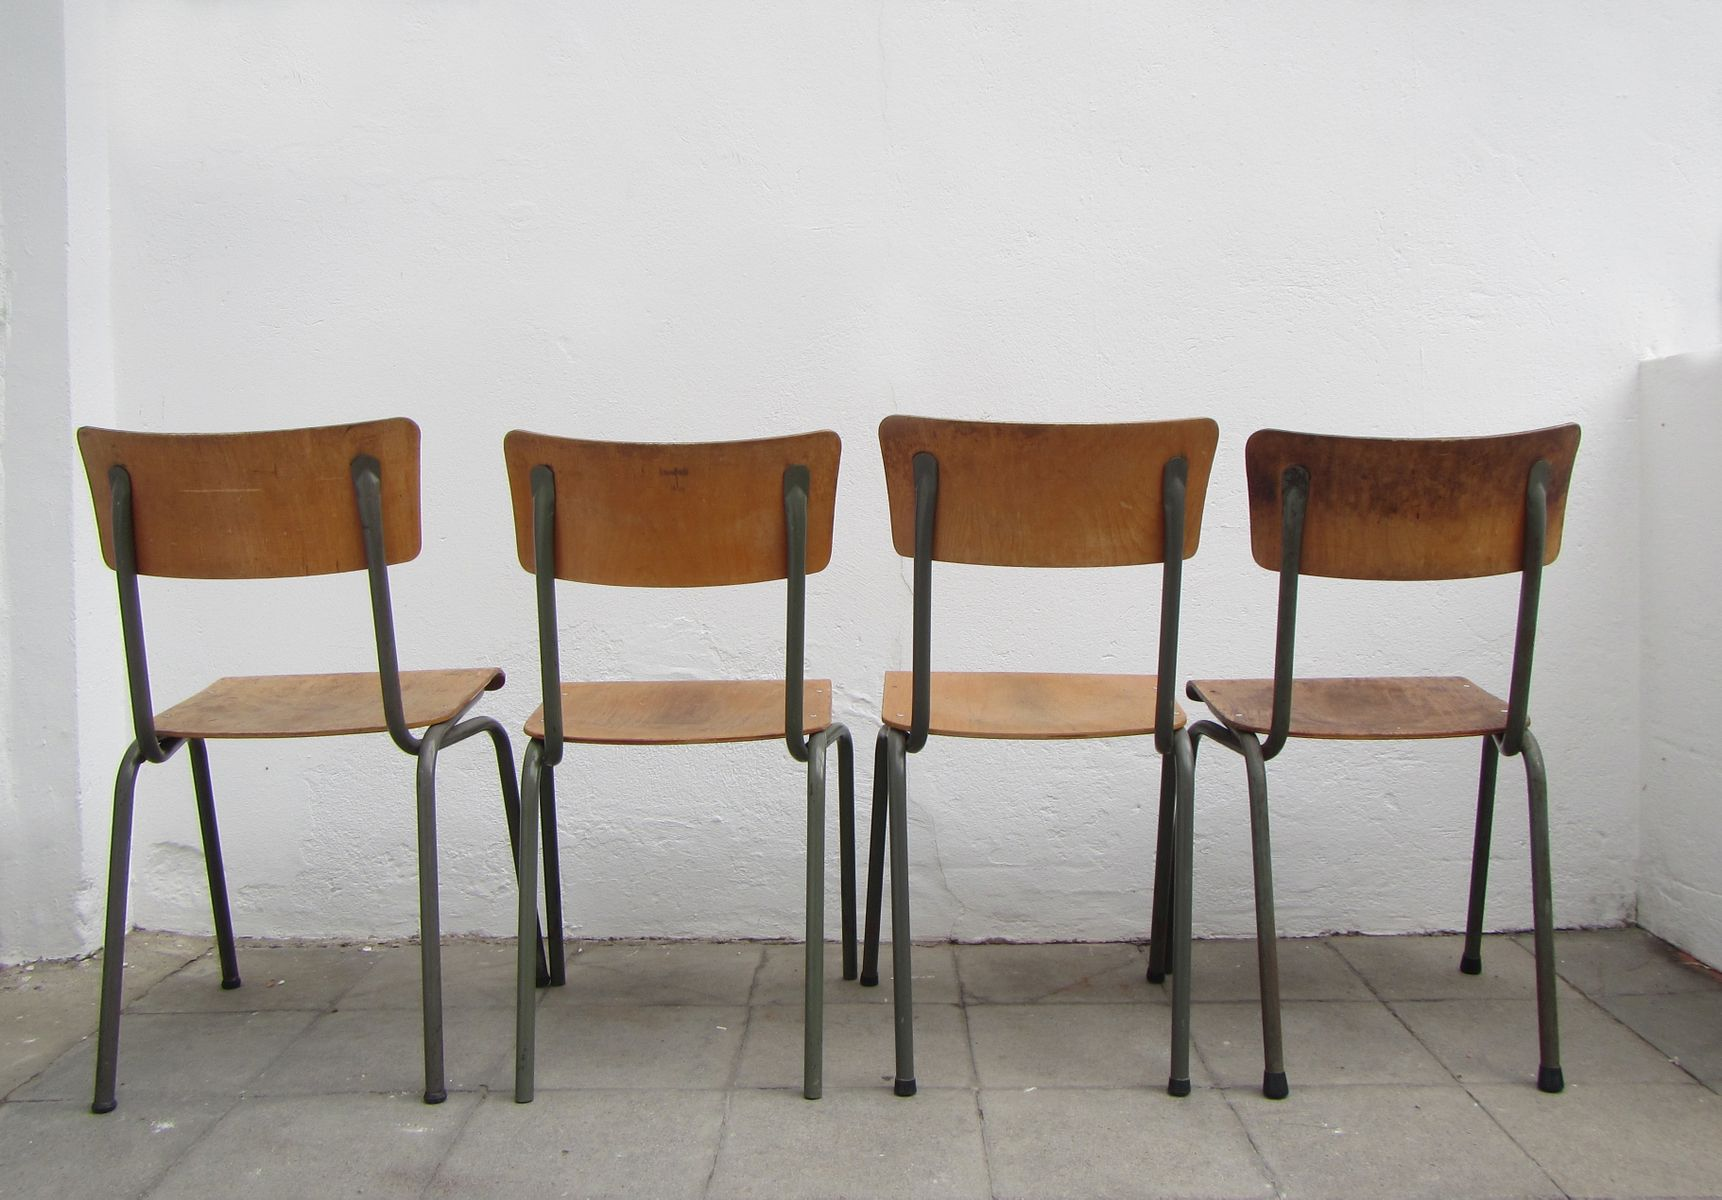 Belgian Industrial Chairs 1960s Set of 4 for sale at Pamono